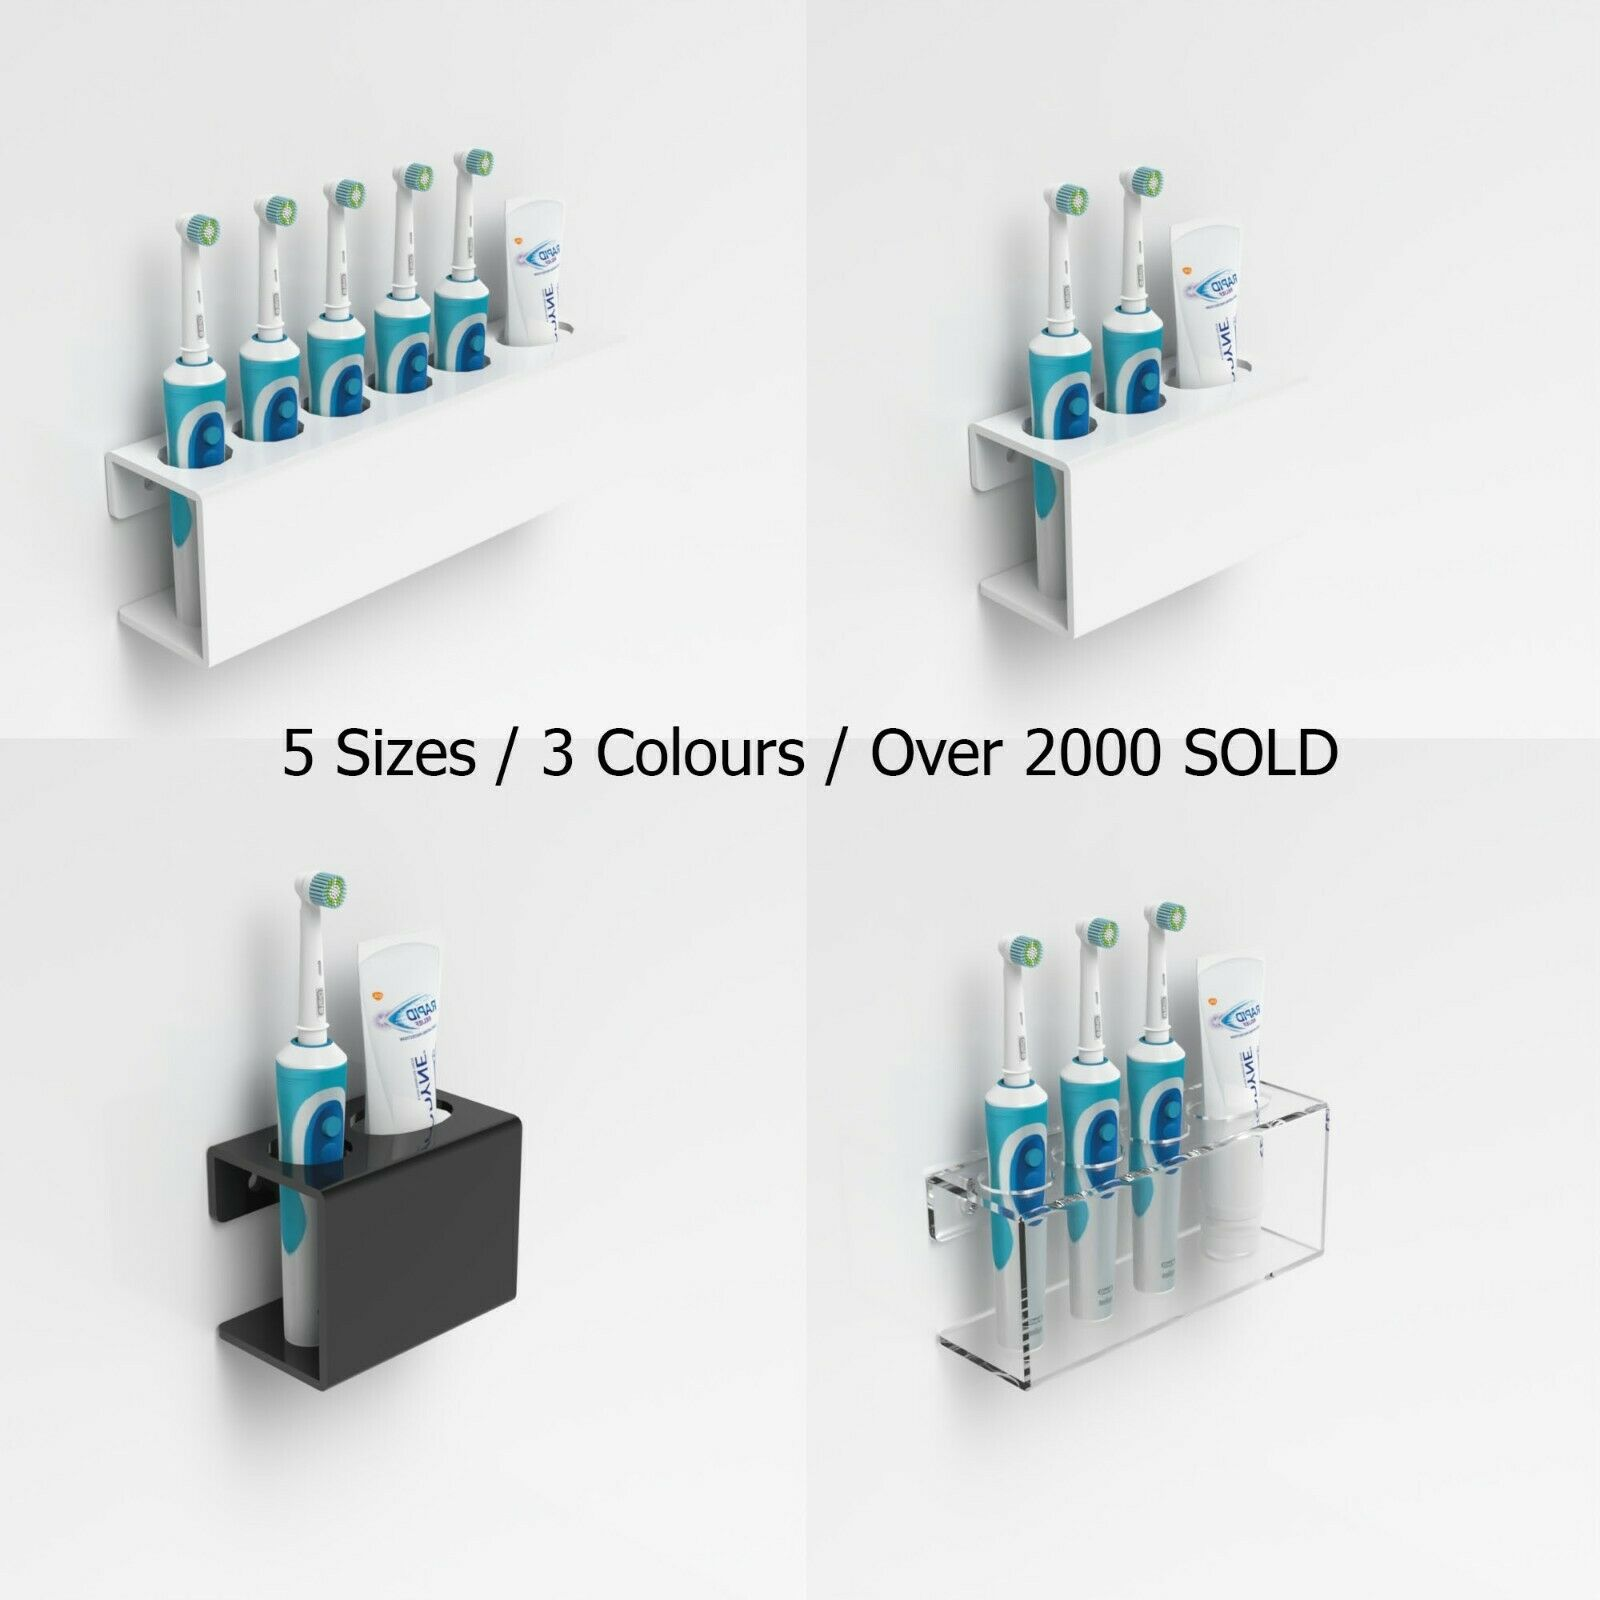 Details about Wall Mounted Electric Toothbrush Holder & Toothpaste Holder Bathroom Organiser